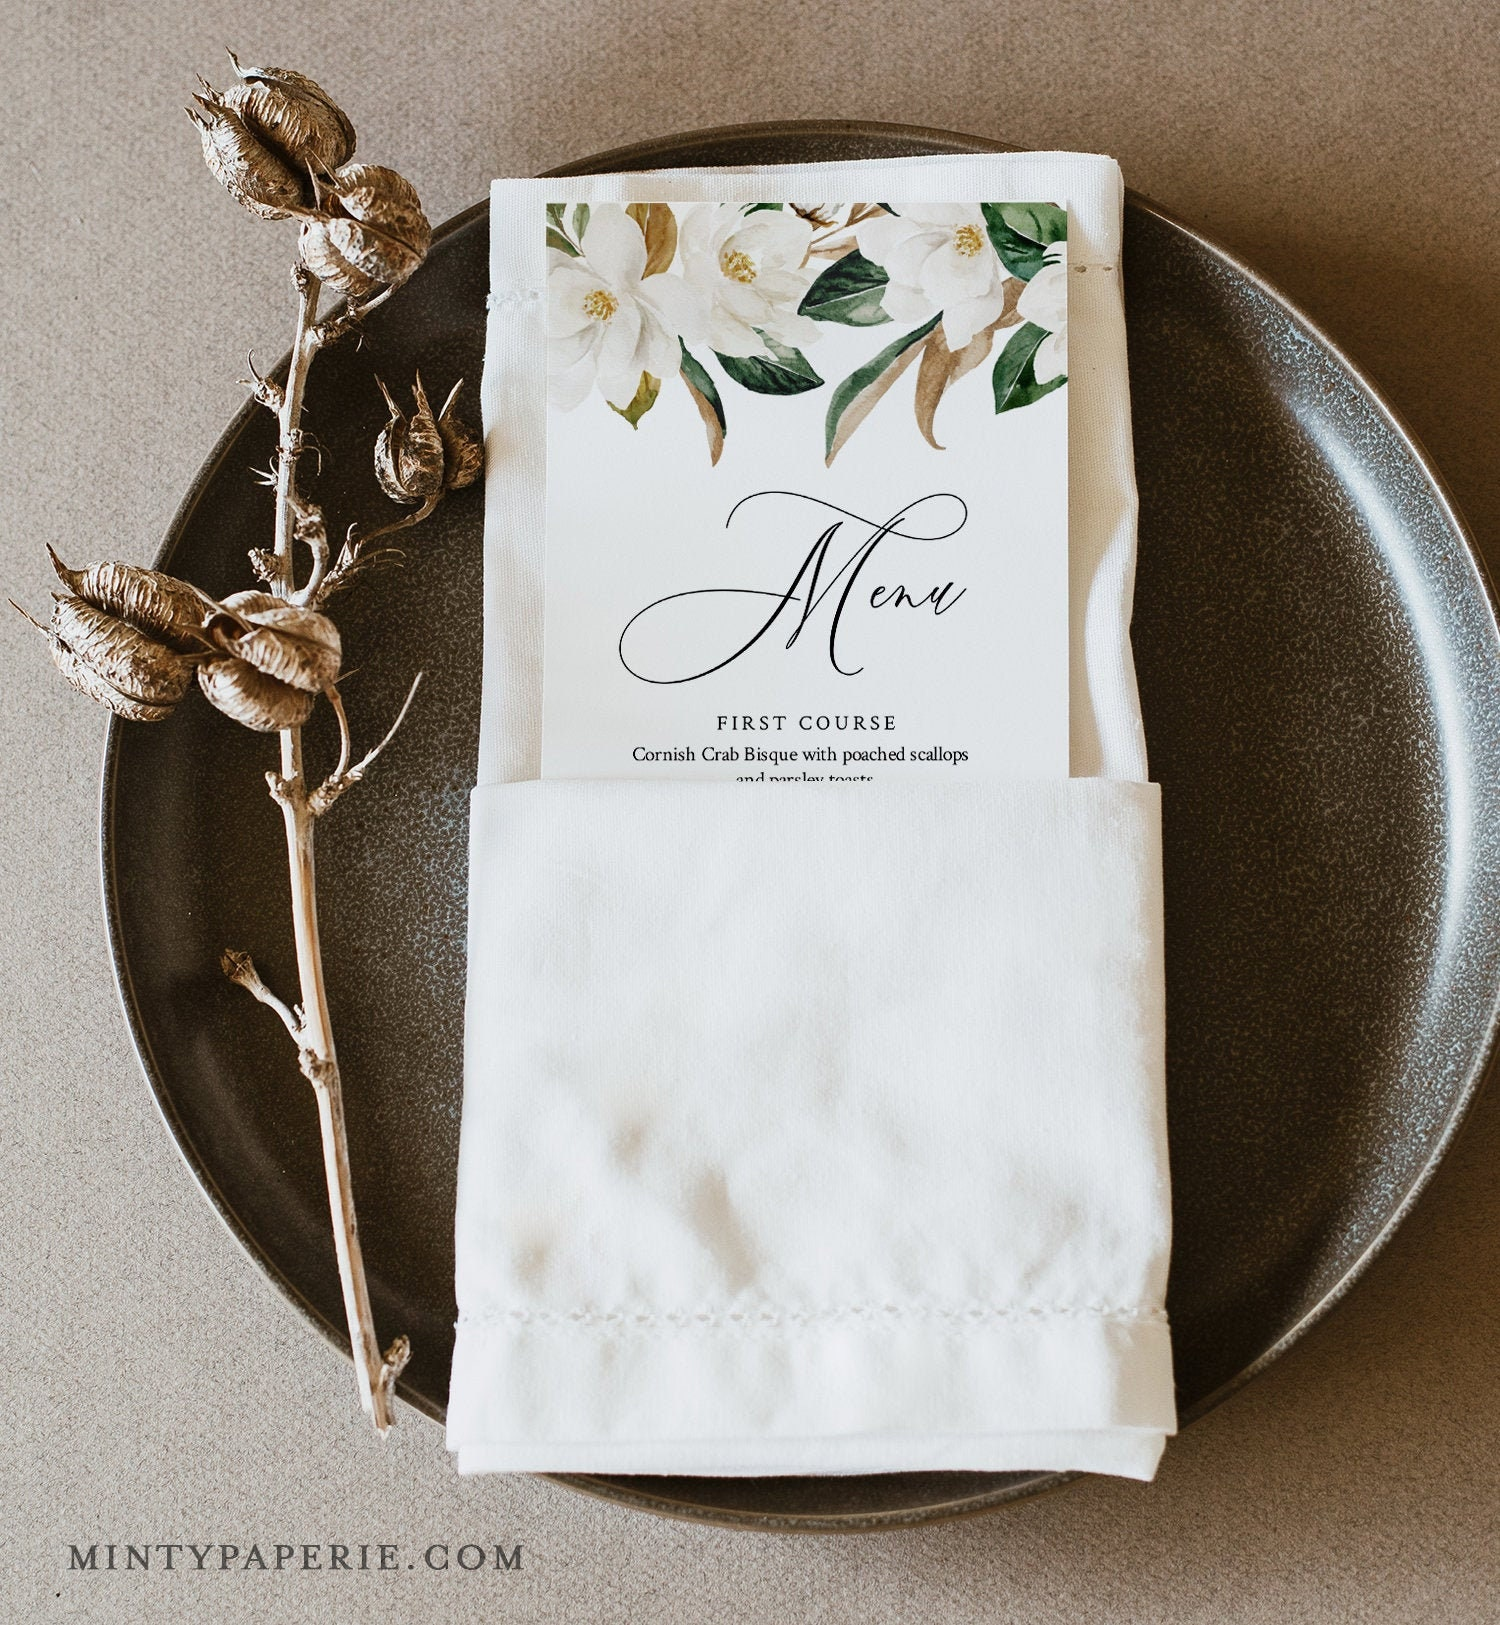 Southern Wedding Reception Food: Magnolia Menu Template, Southern Wedding Menu Card